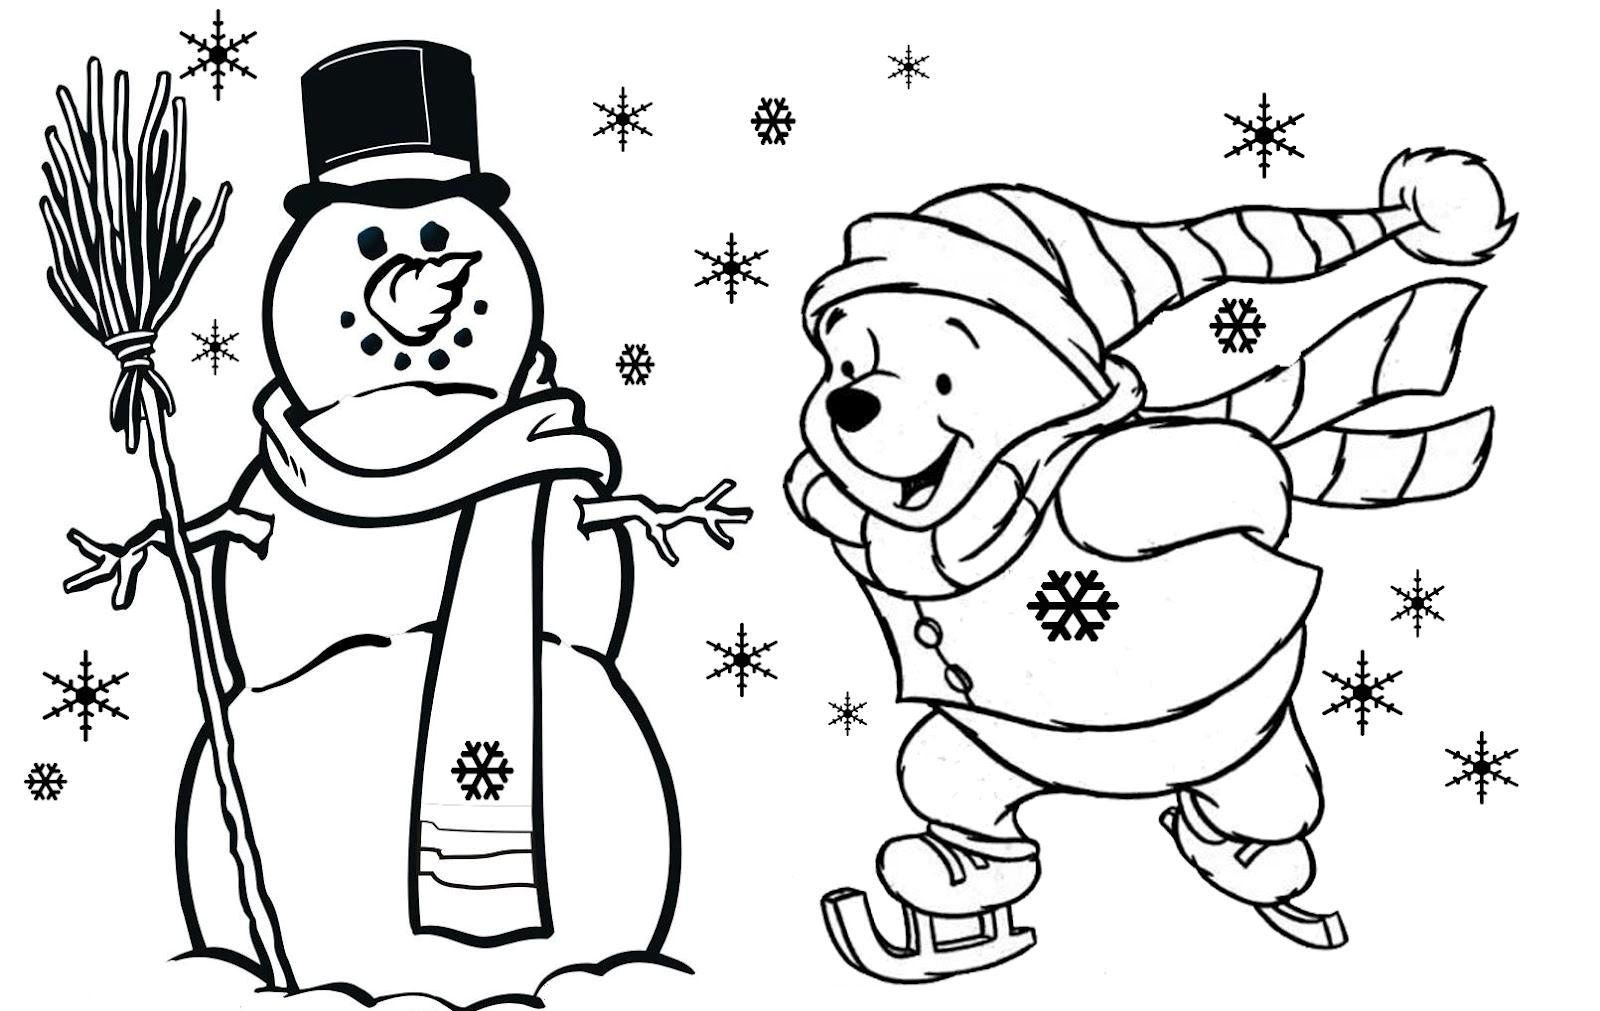 Elmo Christmas Coloring Pages At Getdrawings Free Download